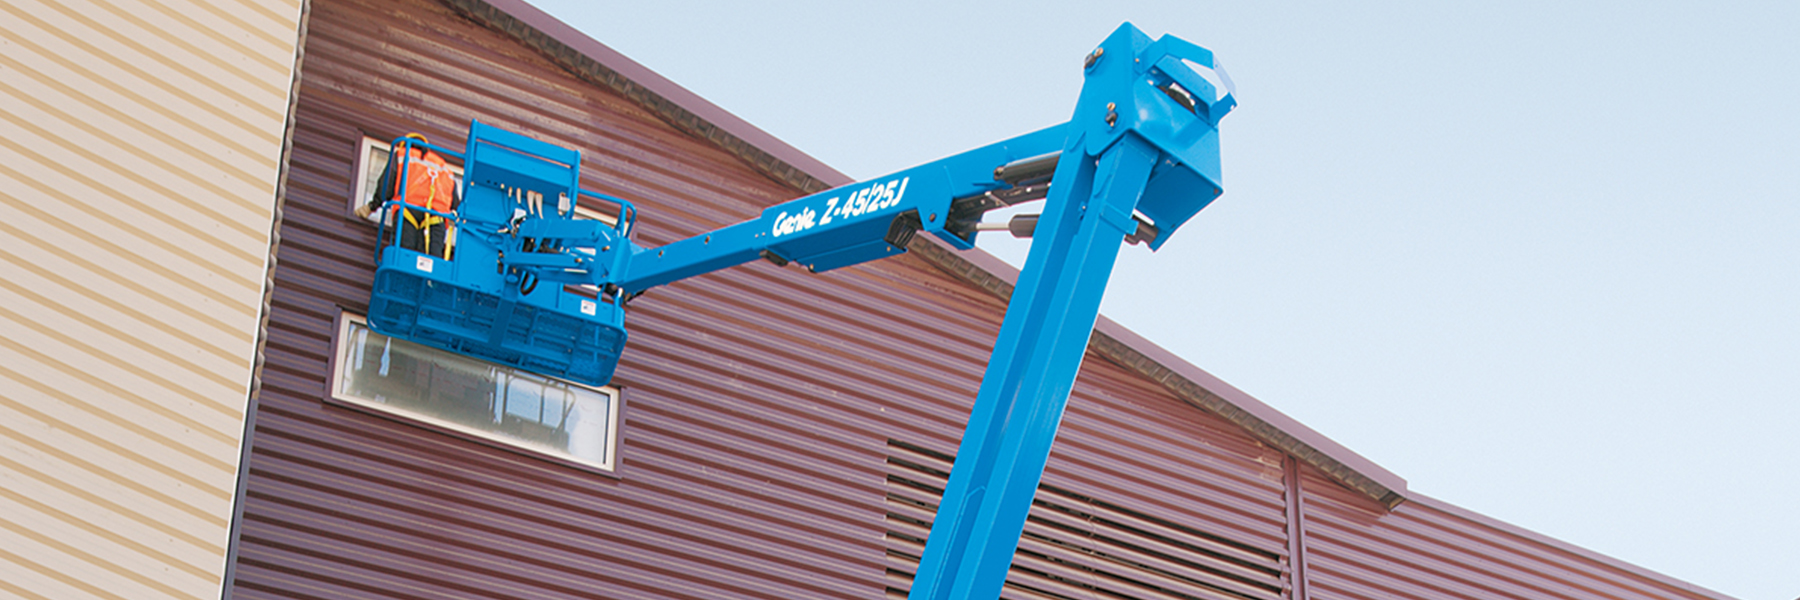 Used Genie Lift for Sale